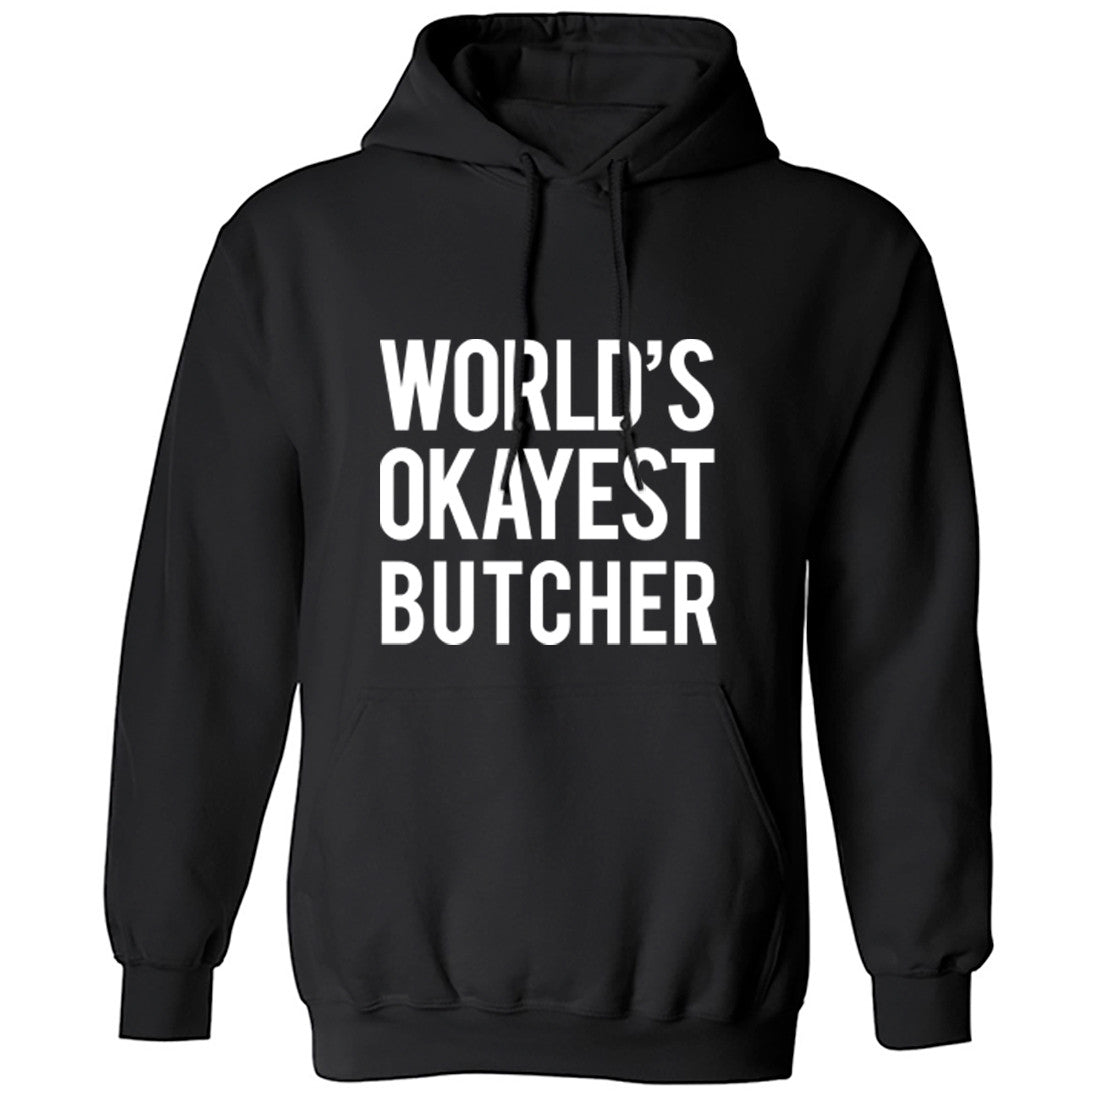 Worlds Okayest Butcher Unisex Hoodie K0511 - Illustrated Identity Ltd.